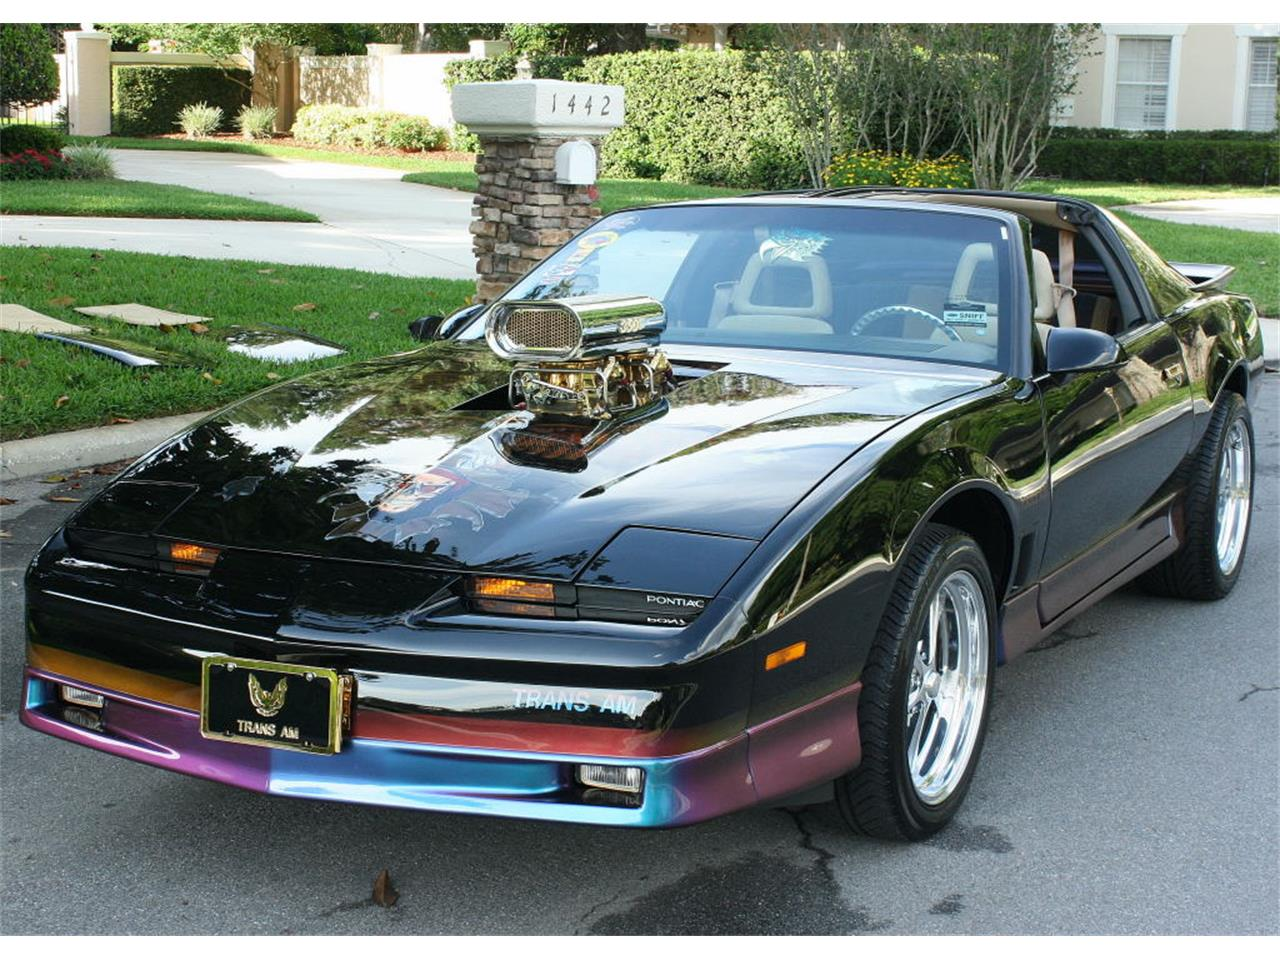 1986 pontiac firebird trans am for sale classiccars com cc 989070 1986 pontiac firebird trans am for sale